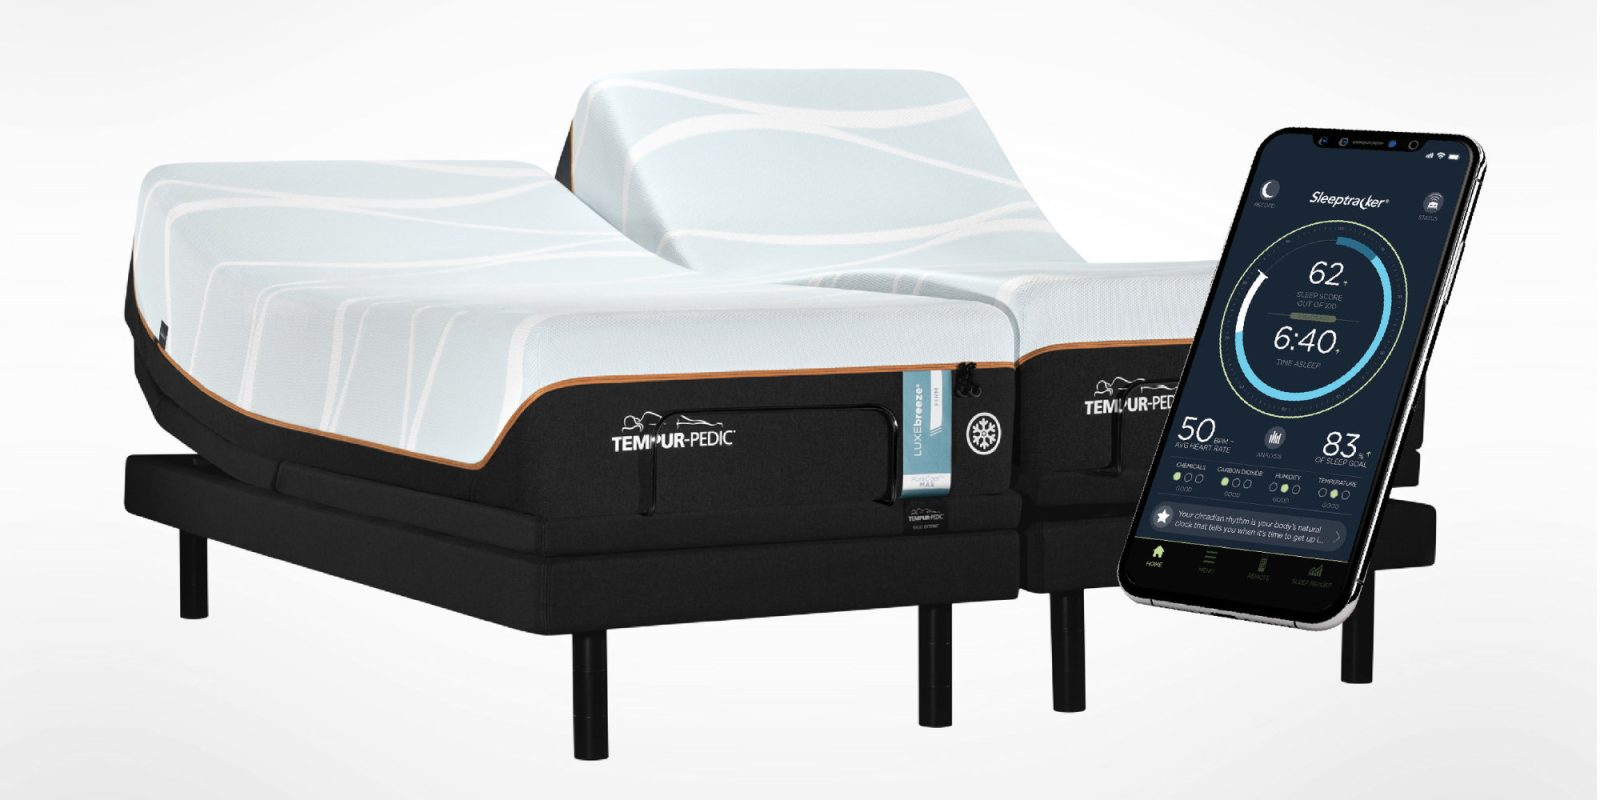 The new TEMPUR-Ergo Smart Base automatically eases snoring, tracks sleep, more